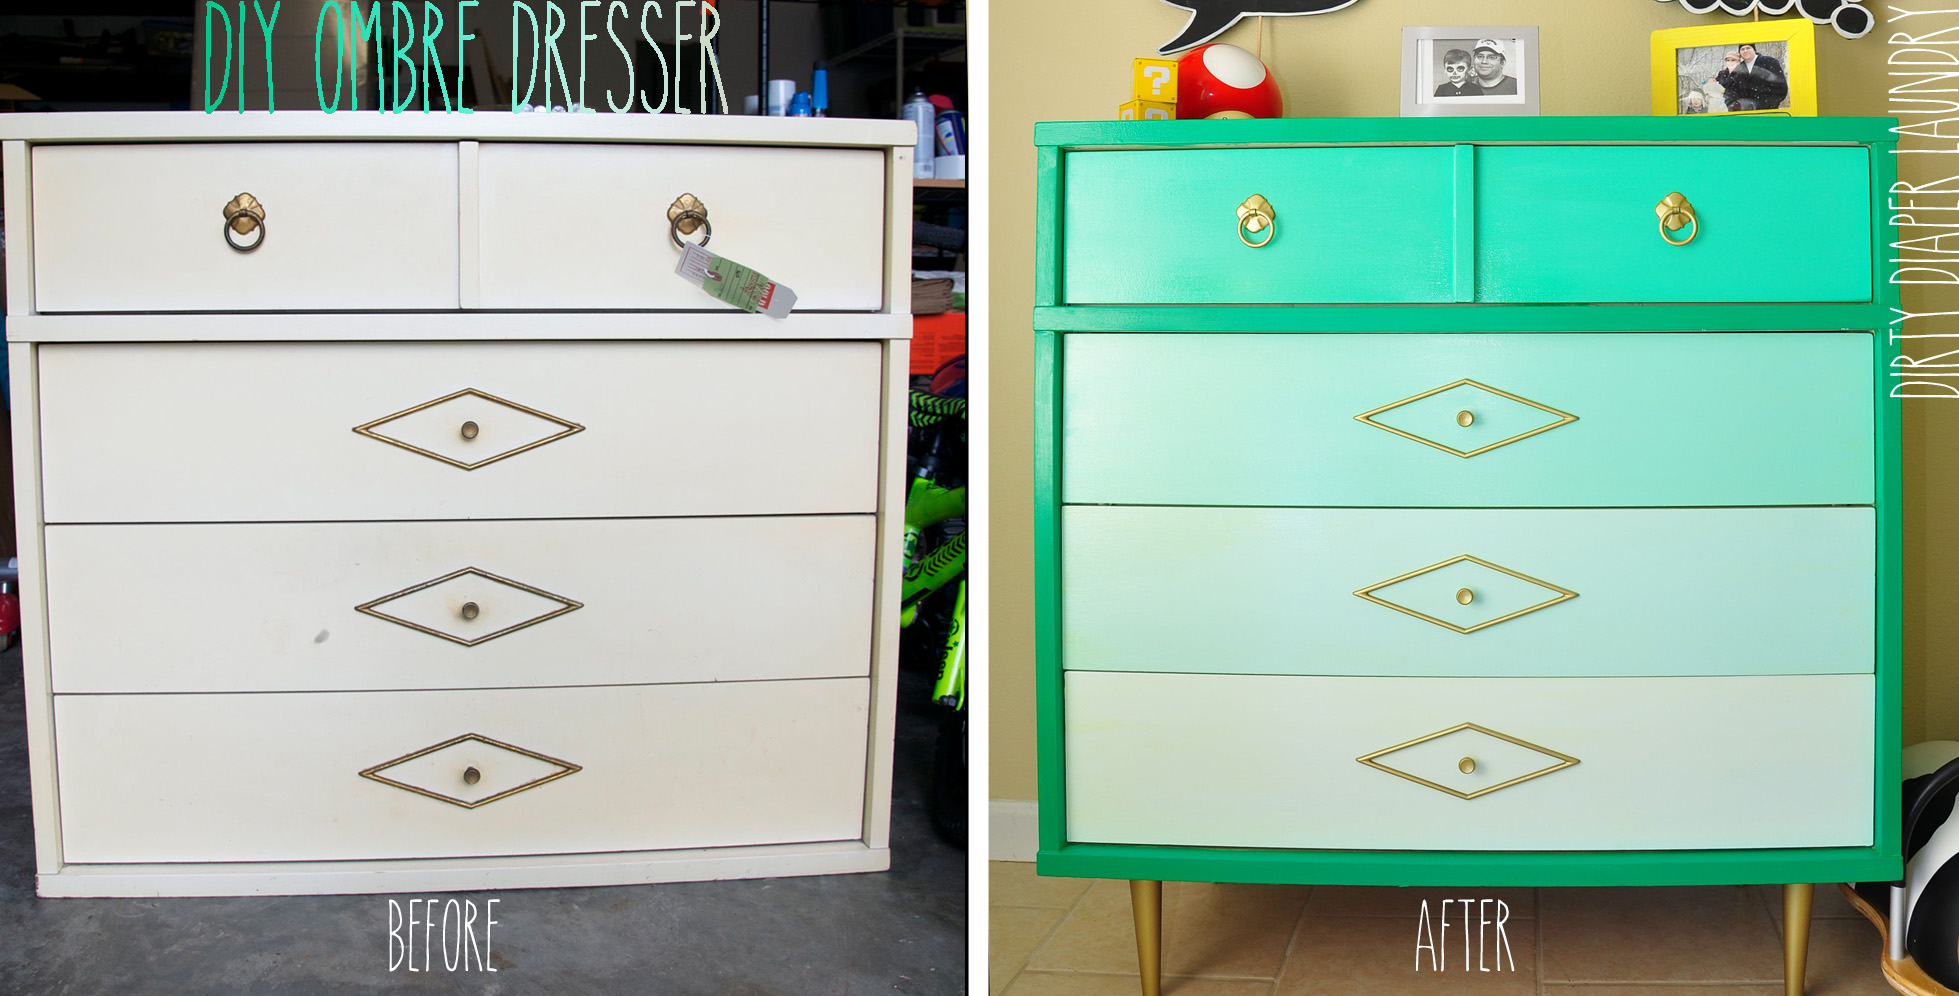 Ombré dresser before and after